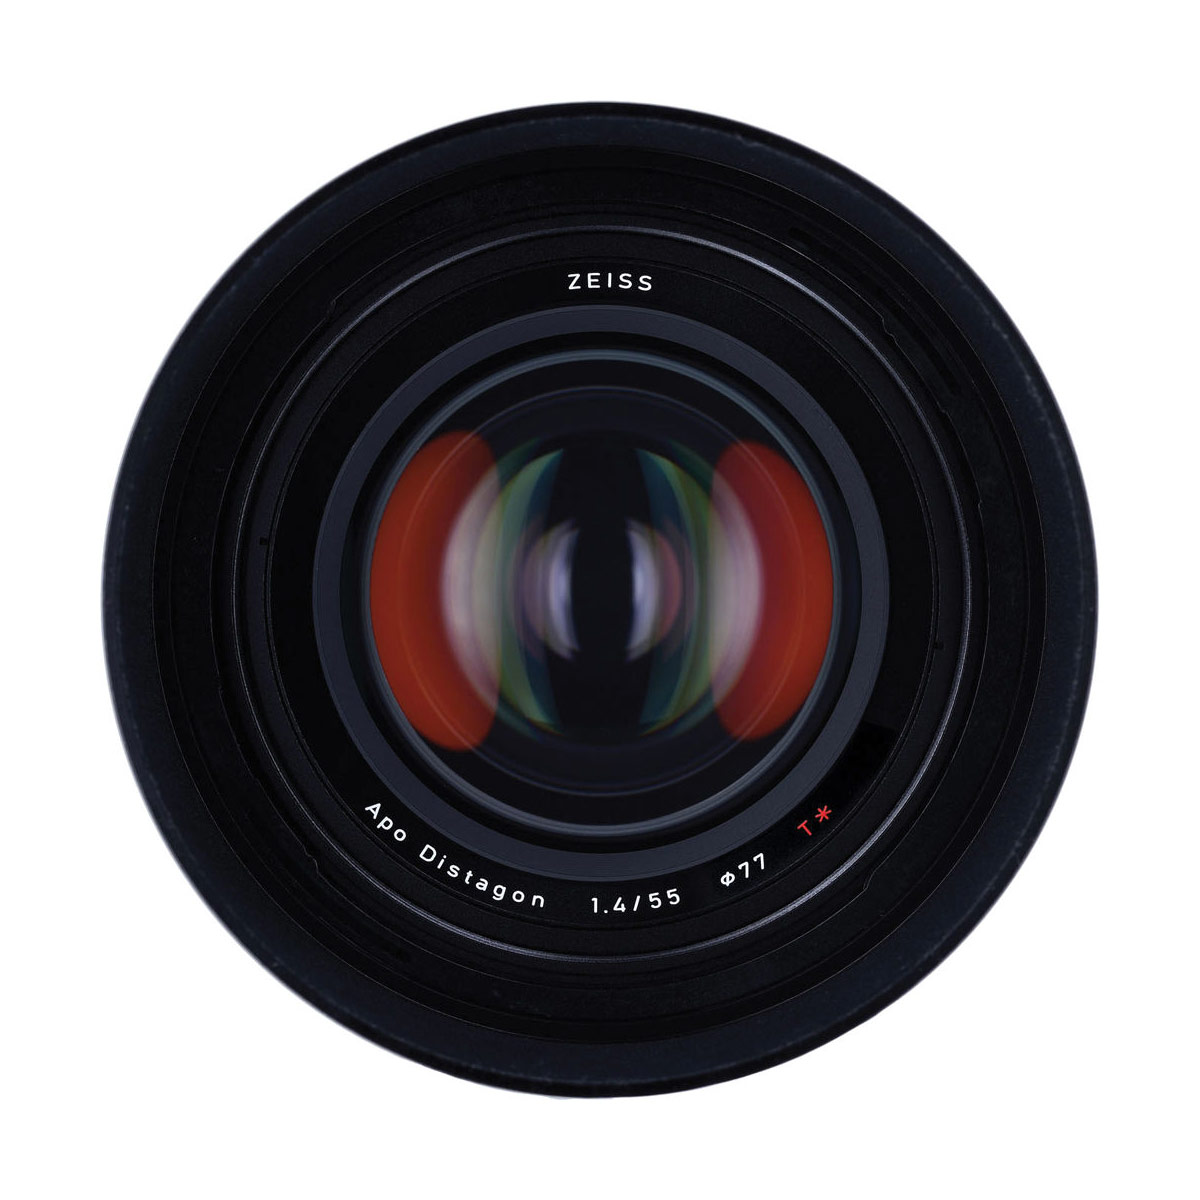 Zeiss Otus 55mm f/1.4 Front Element